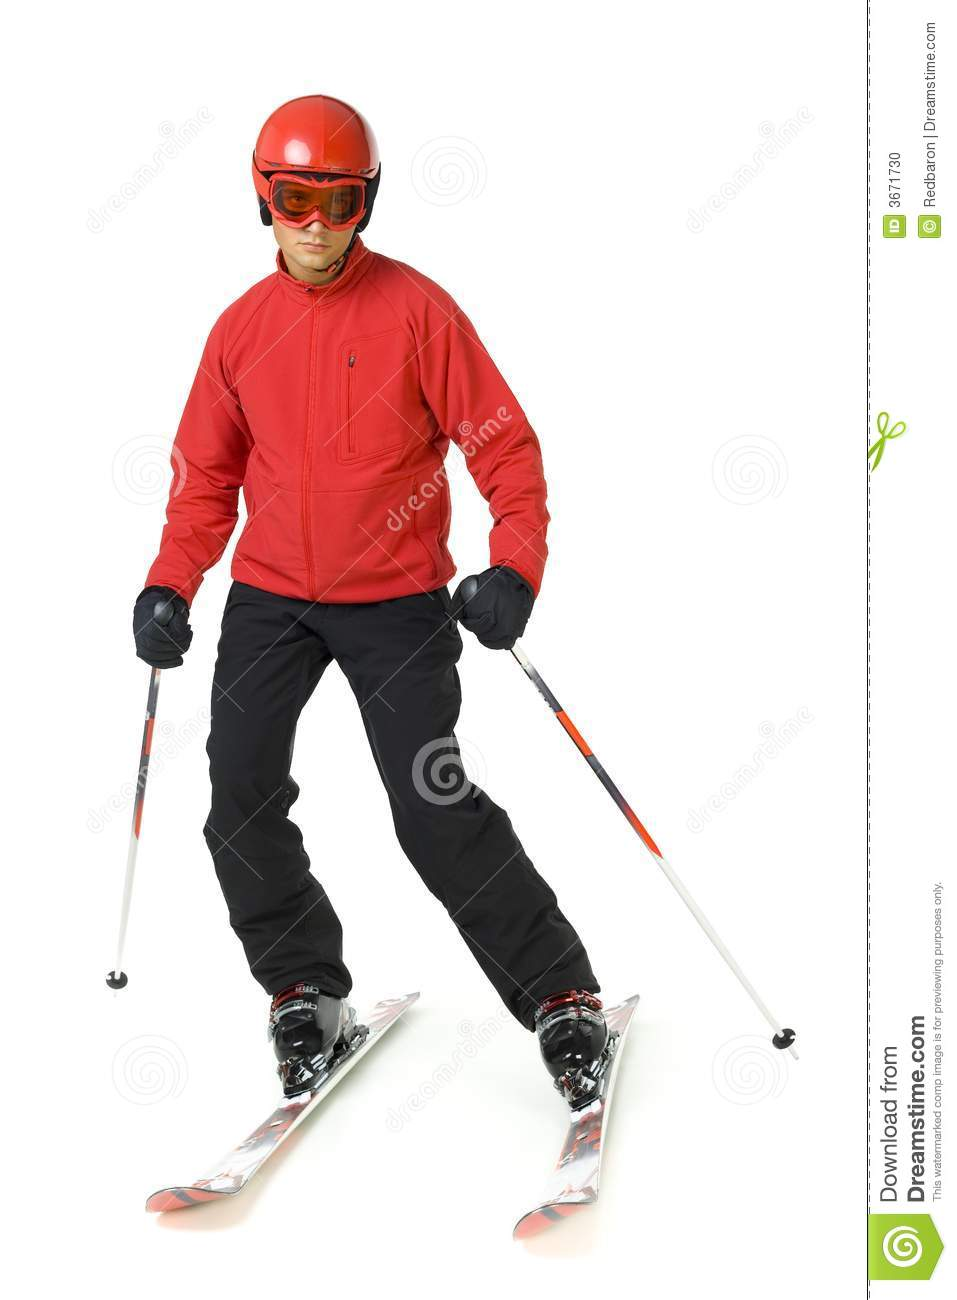 Touch Typing Rules in addition 506232814348042854 furthermore Radio likewise Poor Posture Treatment likewise Stock Photo Young Skiing Man Image3671730. on posure